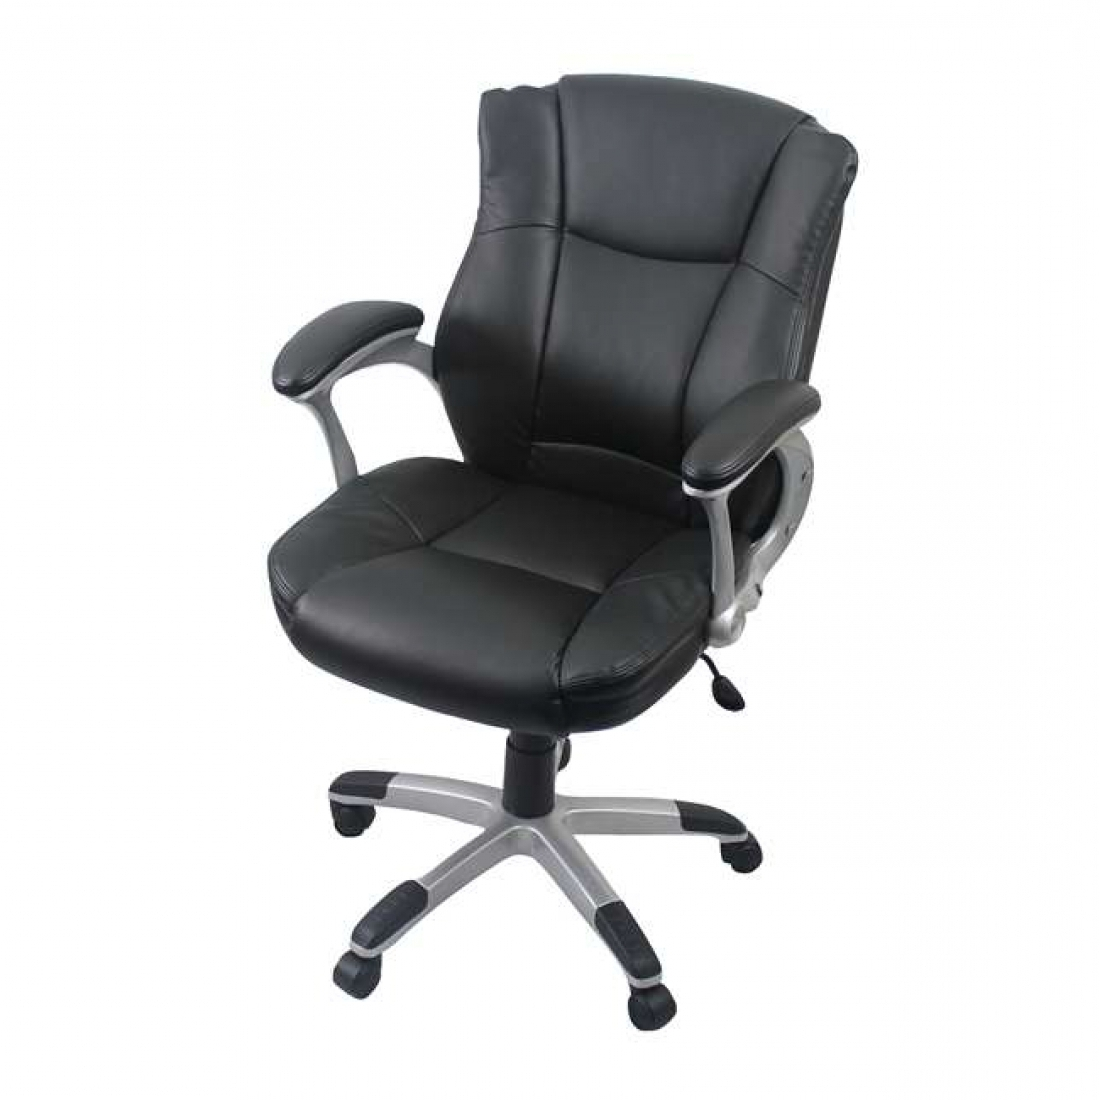 Cool Living Stand Desks And Office Chairs – Kms Inside Most Recent Xl Executive Office Chairs (View 9 of 20)